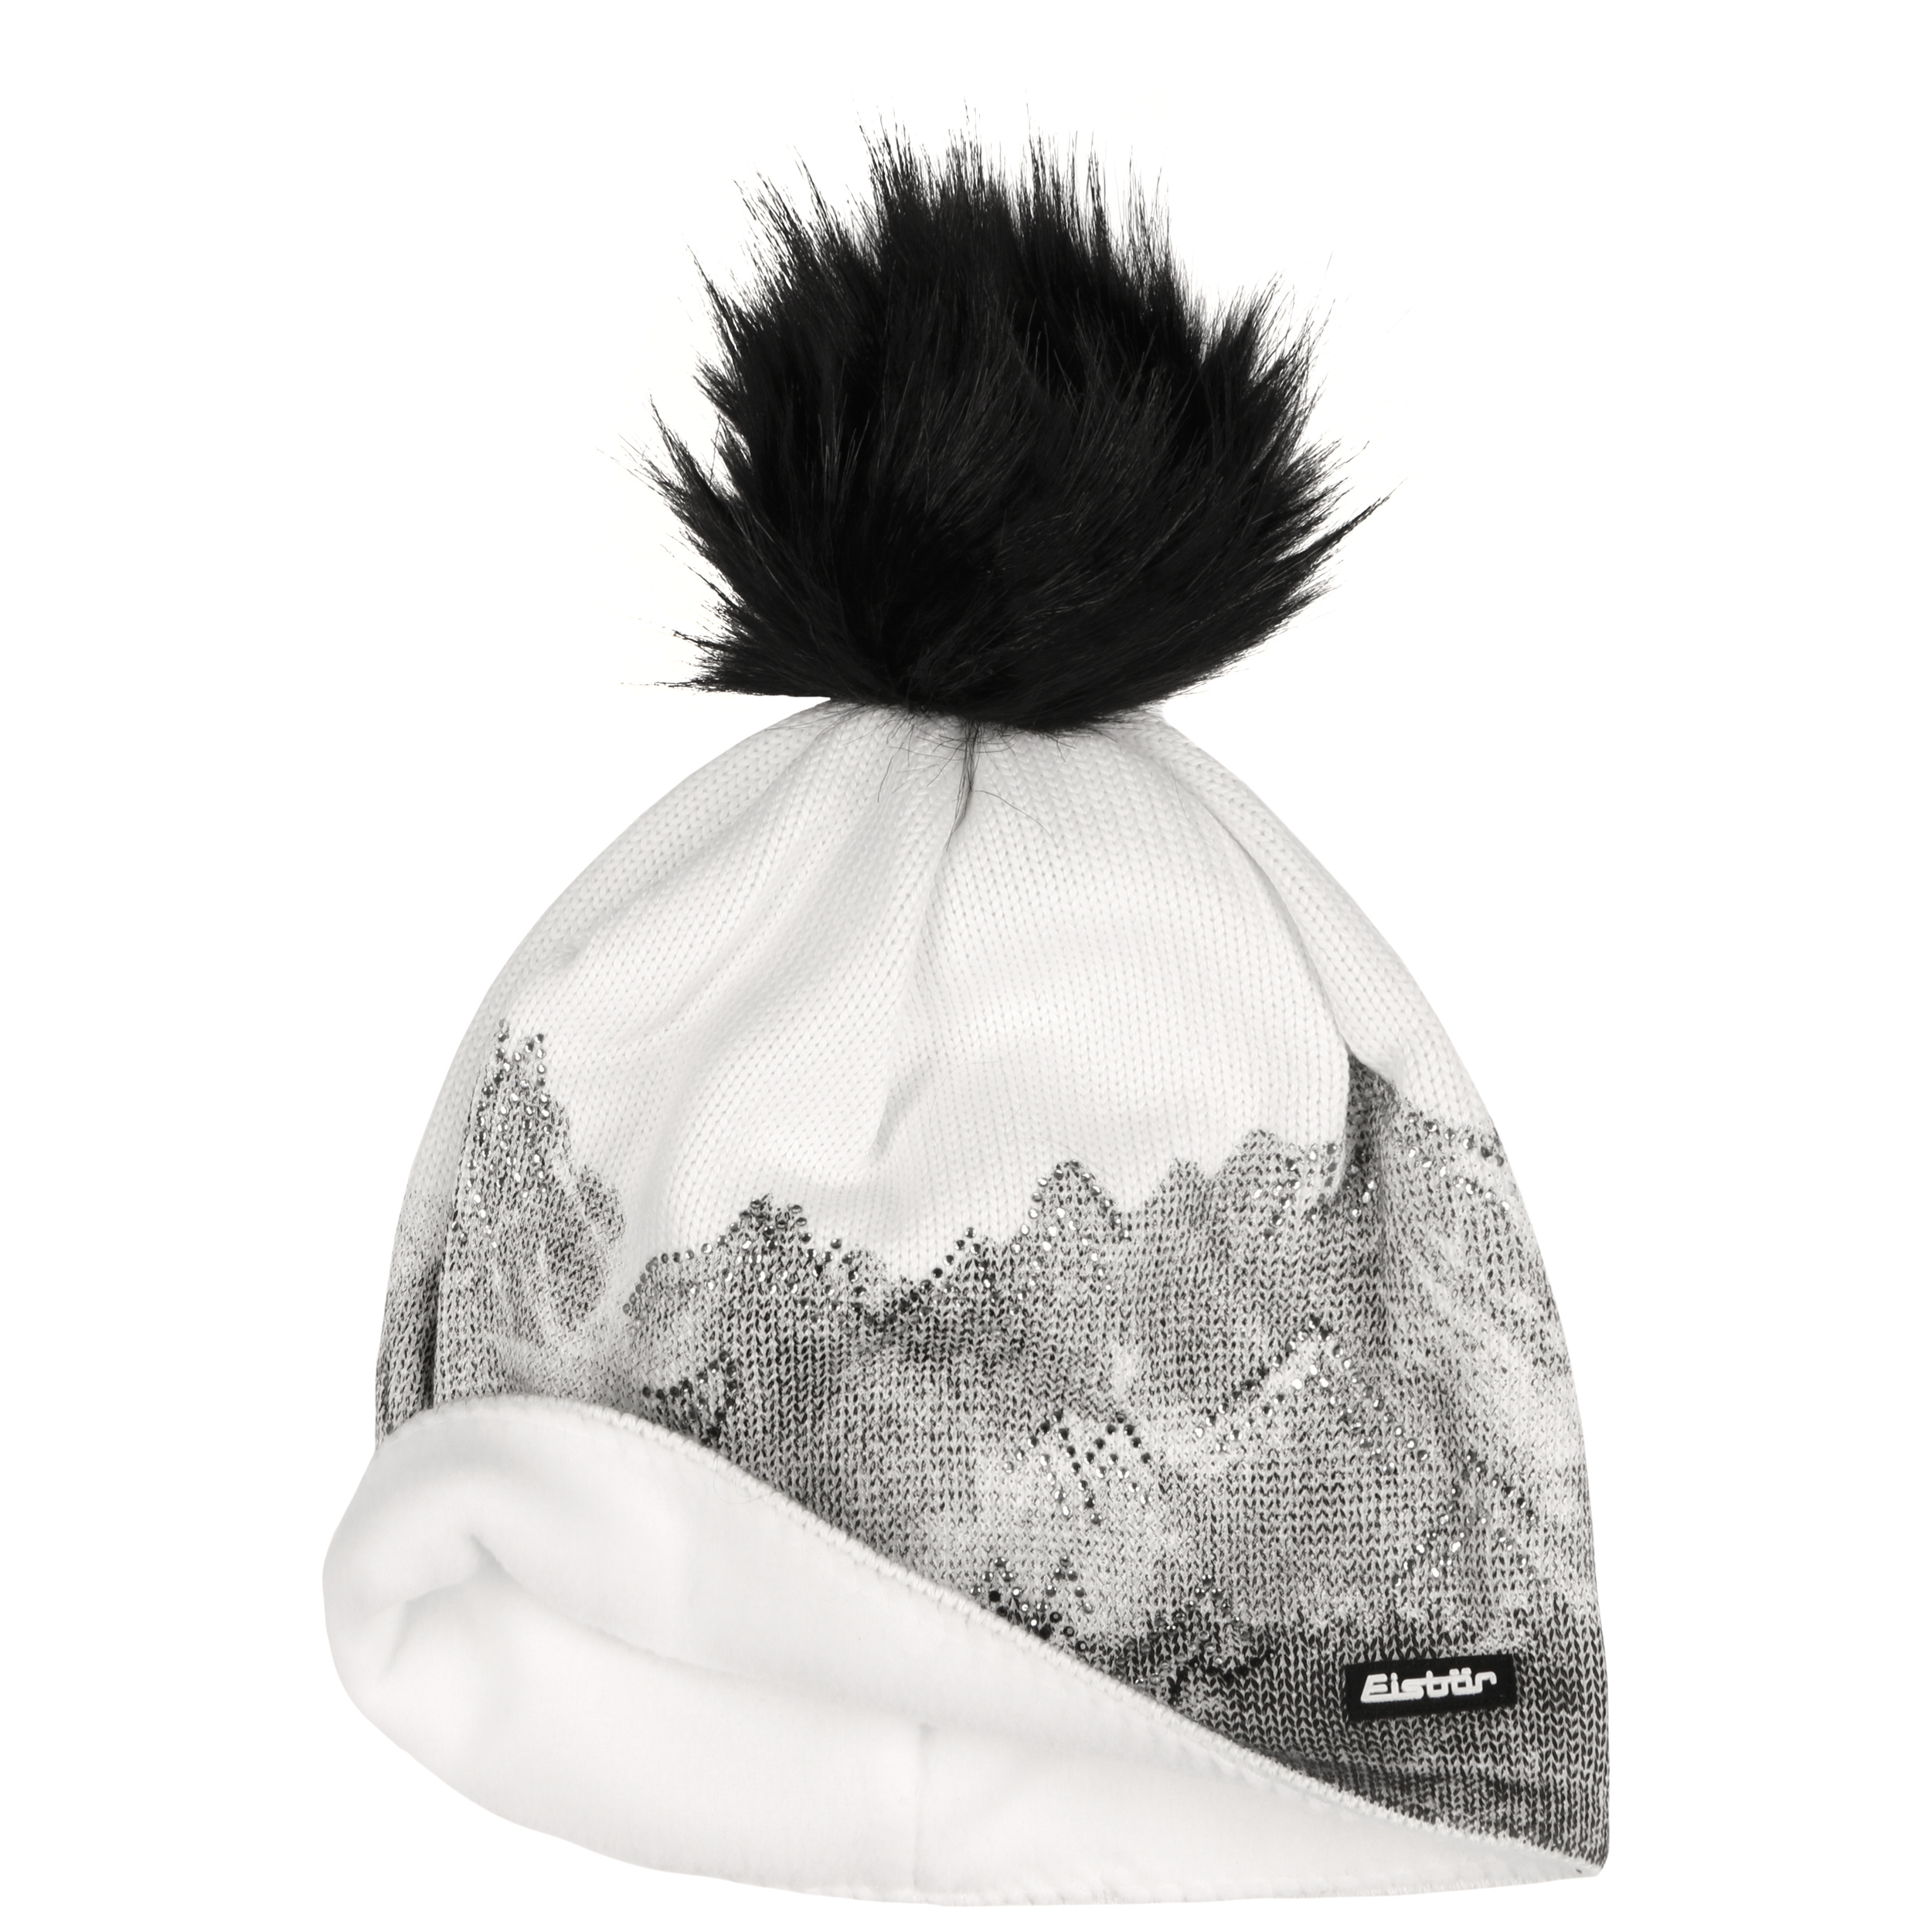 Beanie Draw Lux Crystal Mountain by Eisbär - antracite 1 ... 609c35ec3eb7